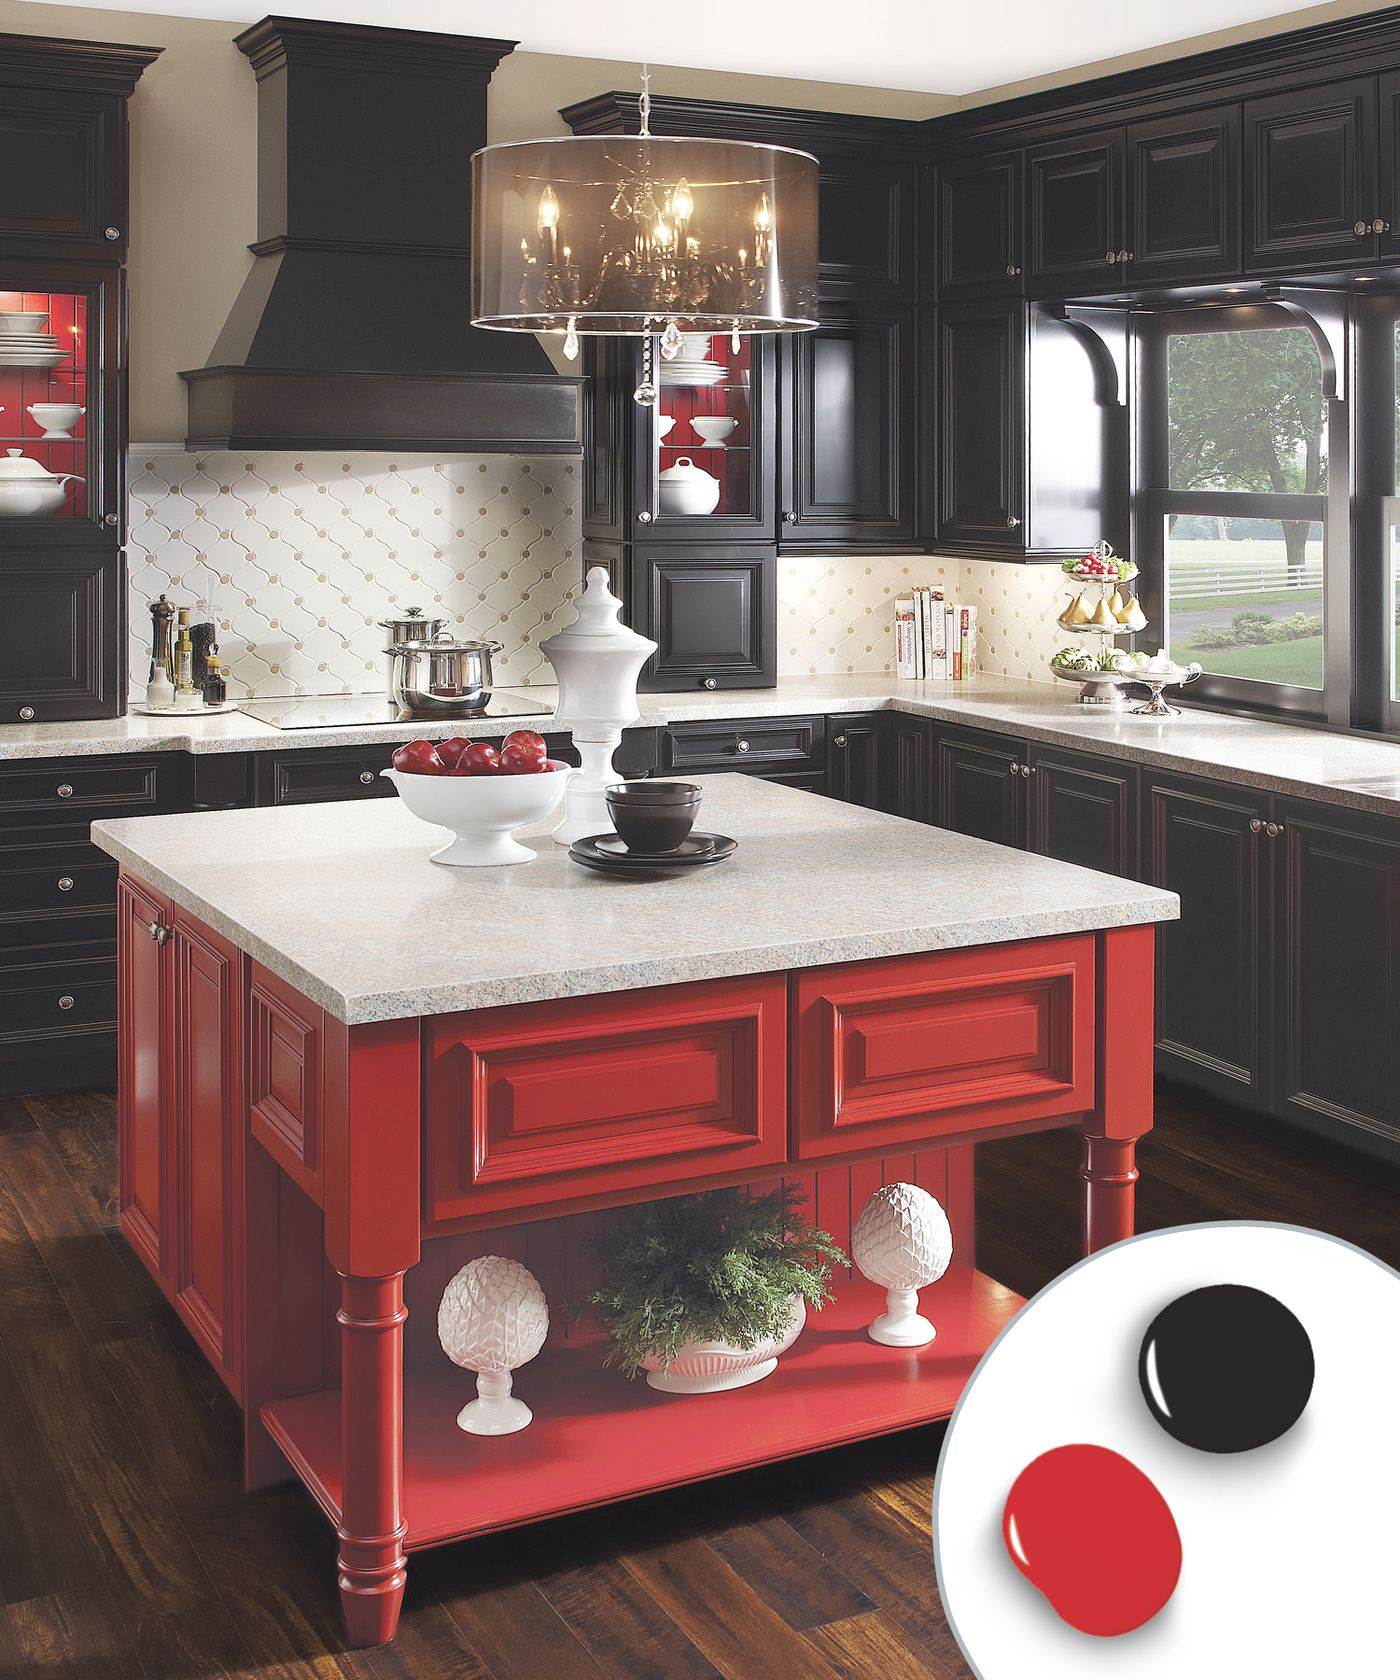 12 Kitchen Cabinet Color Ideas Two